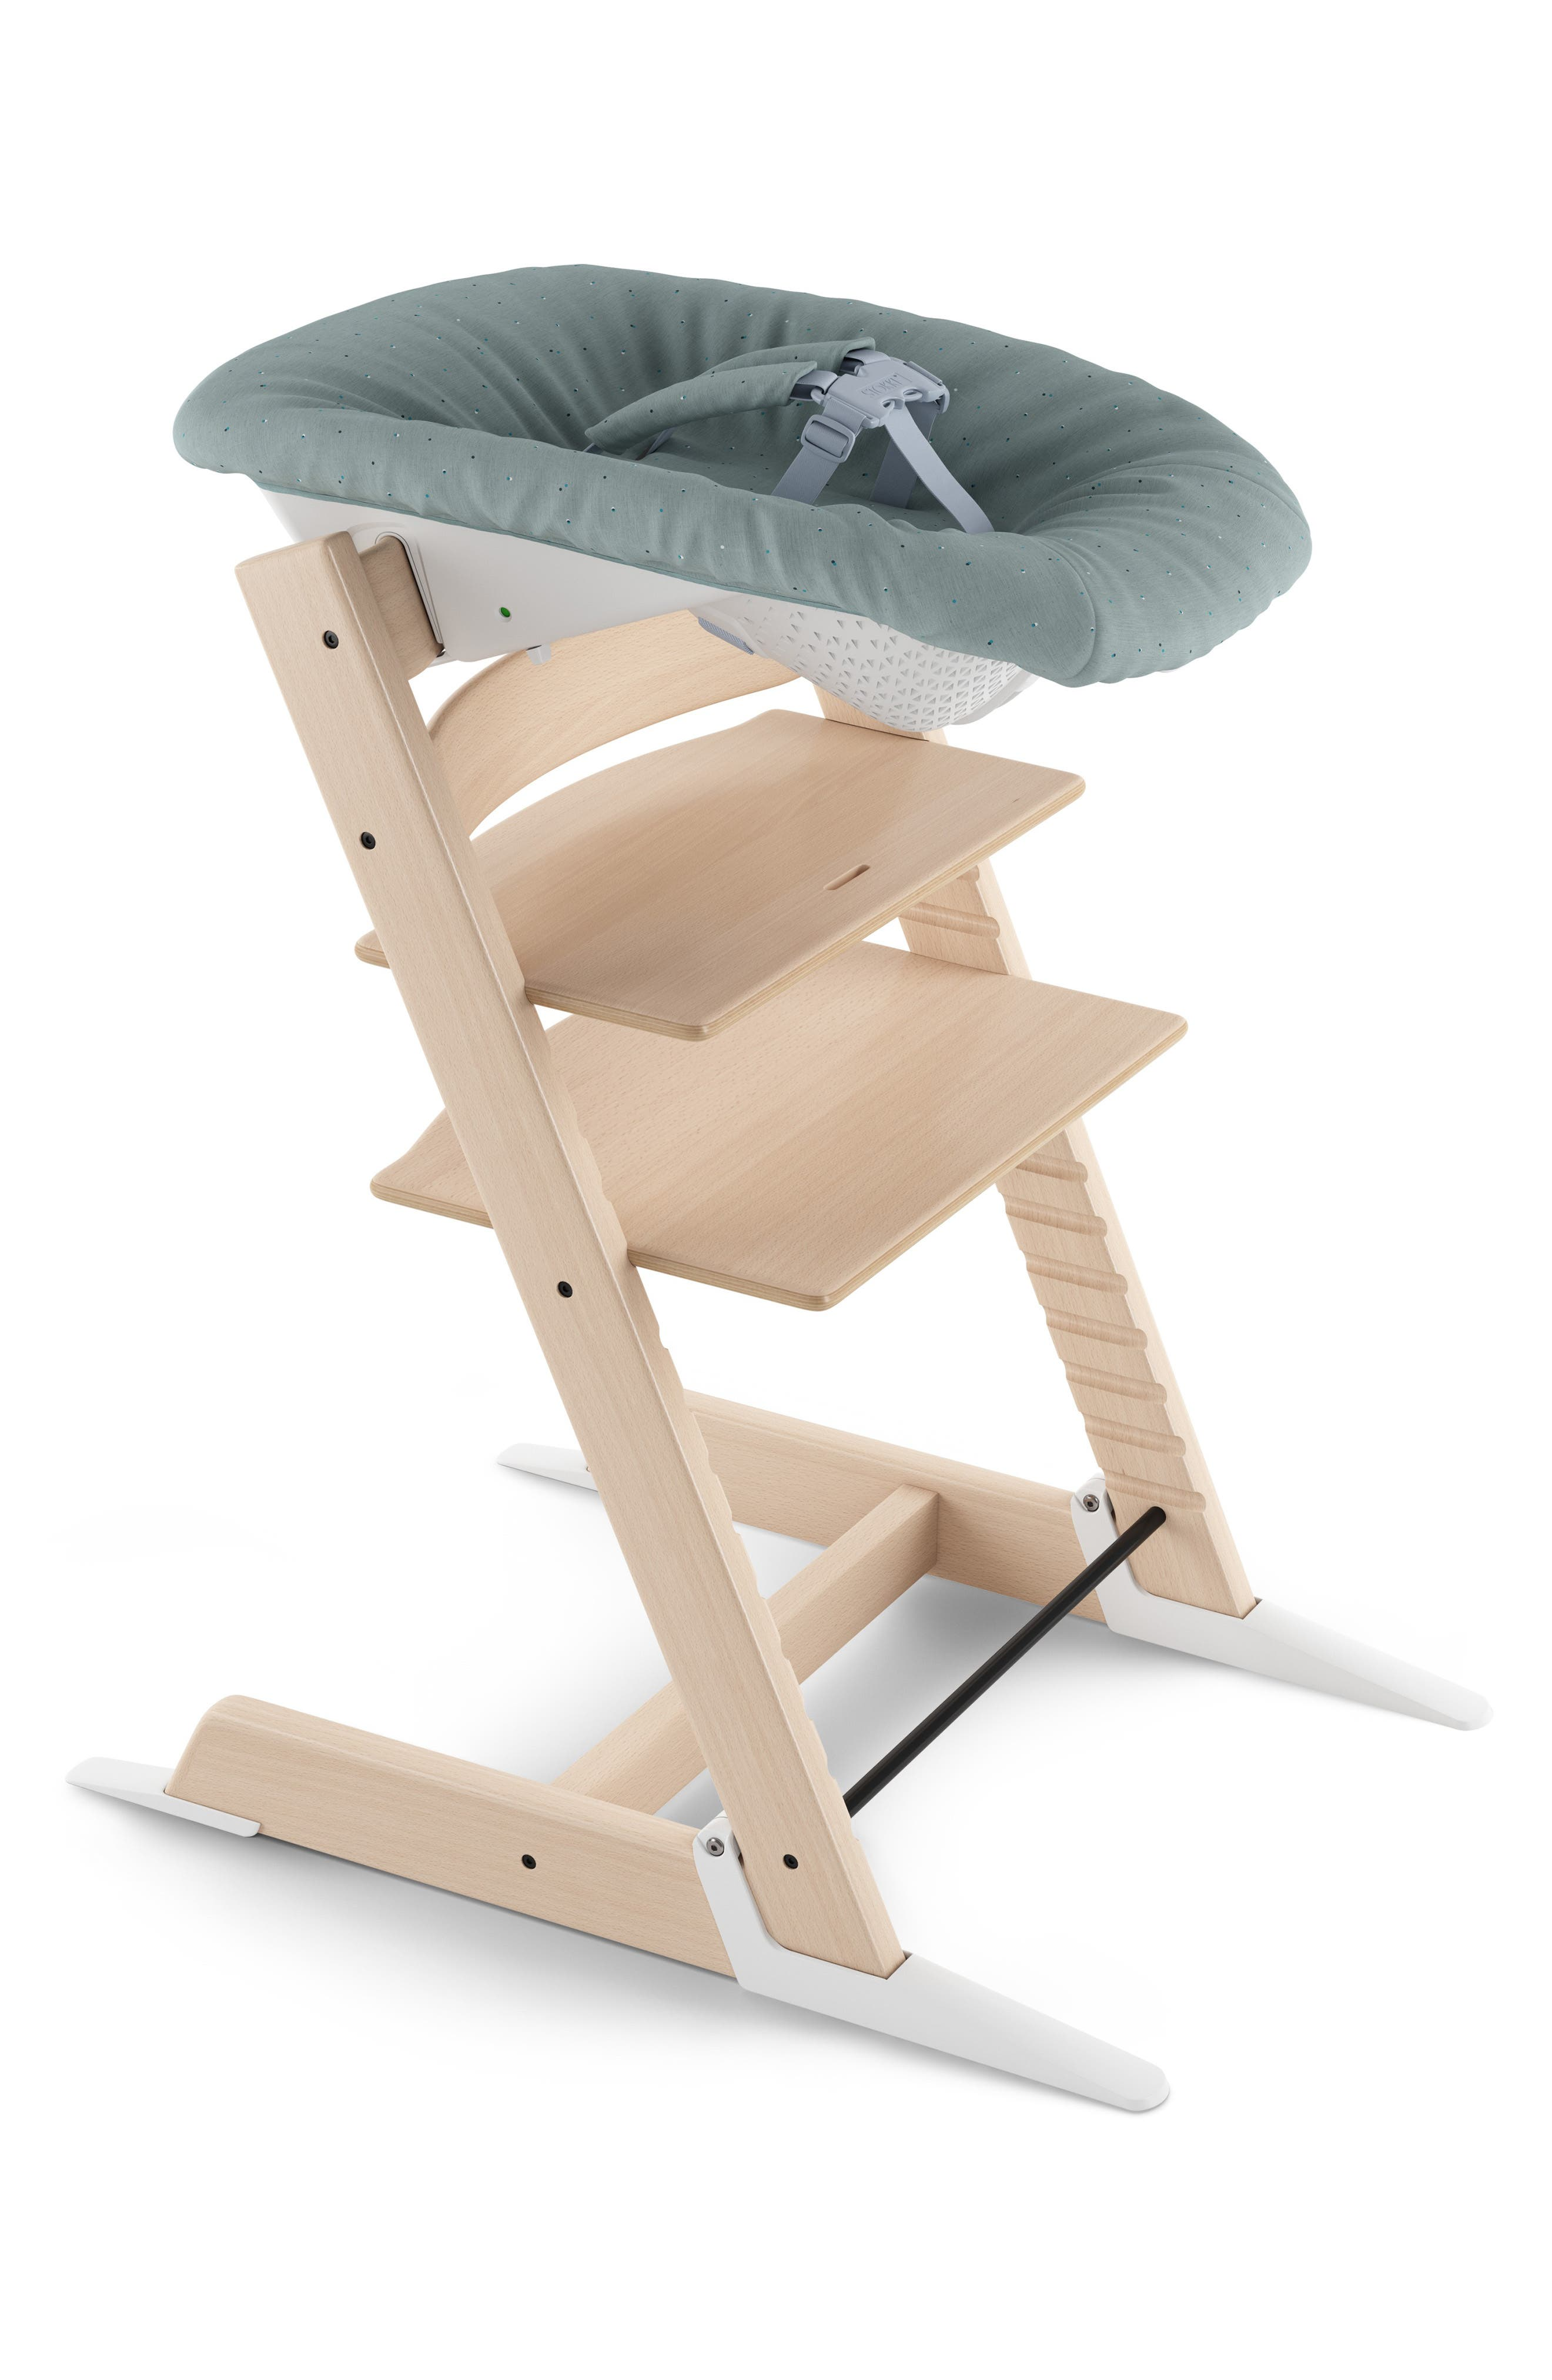 STOKKE, Upholstery Cover for Tripp Trapp Newborn Set Attachment, Alternate thumbnail 2, color, JADE CONFETTI